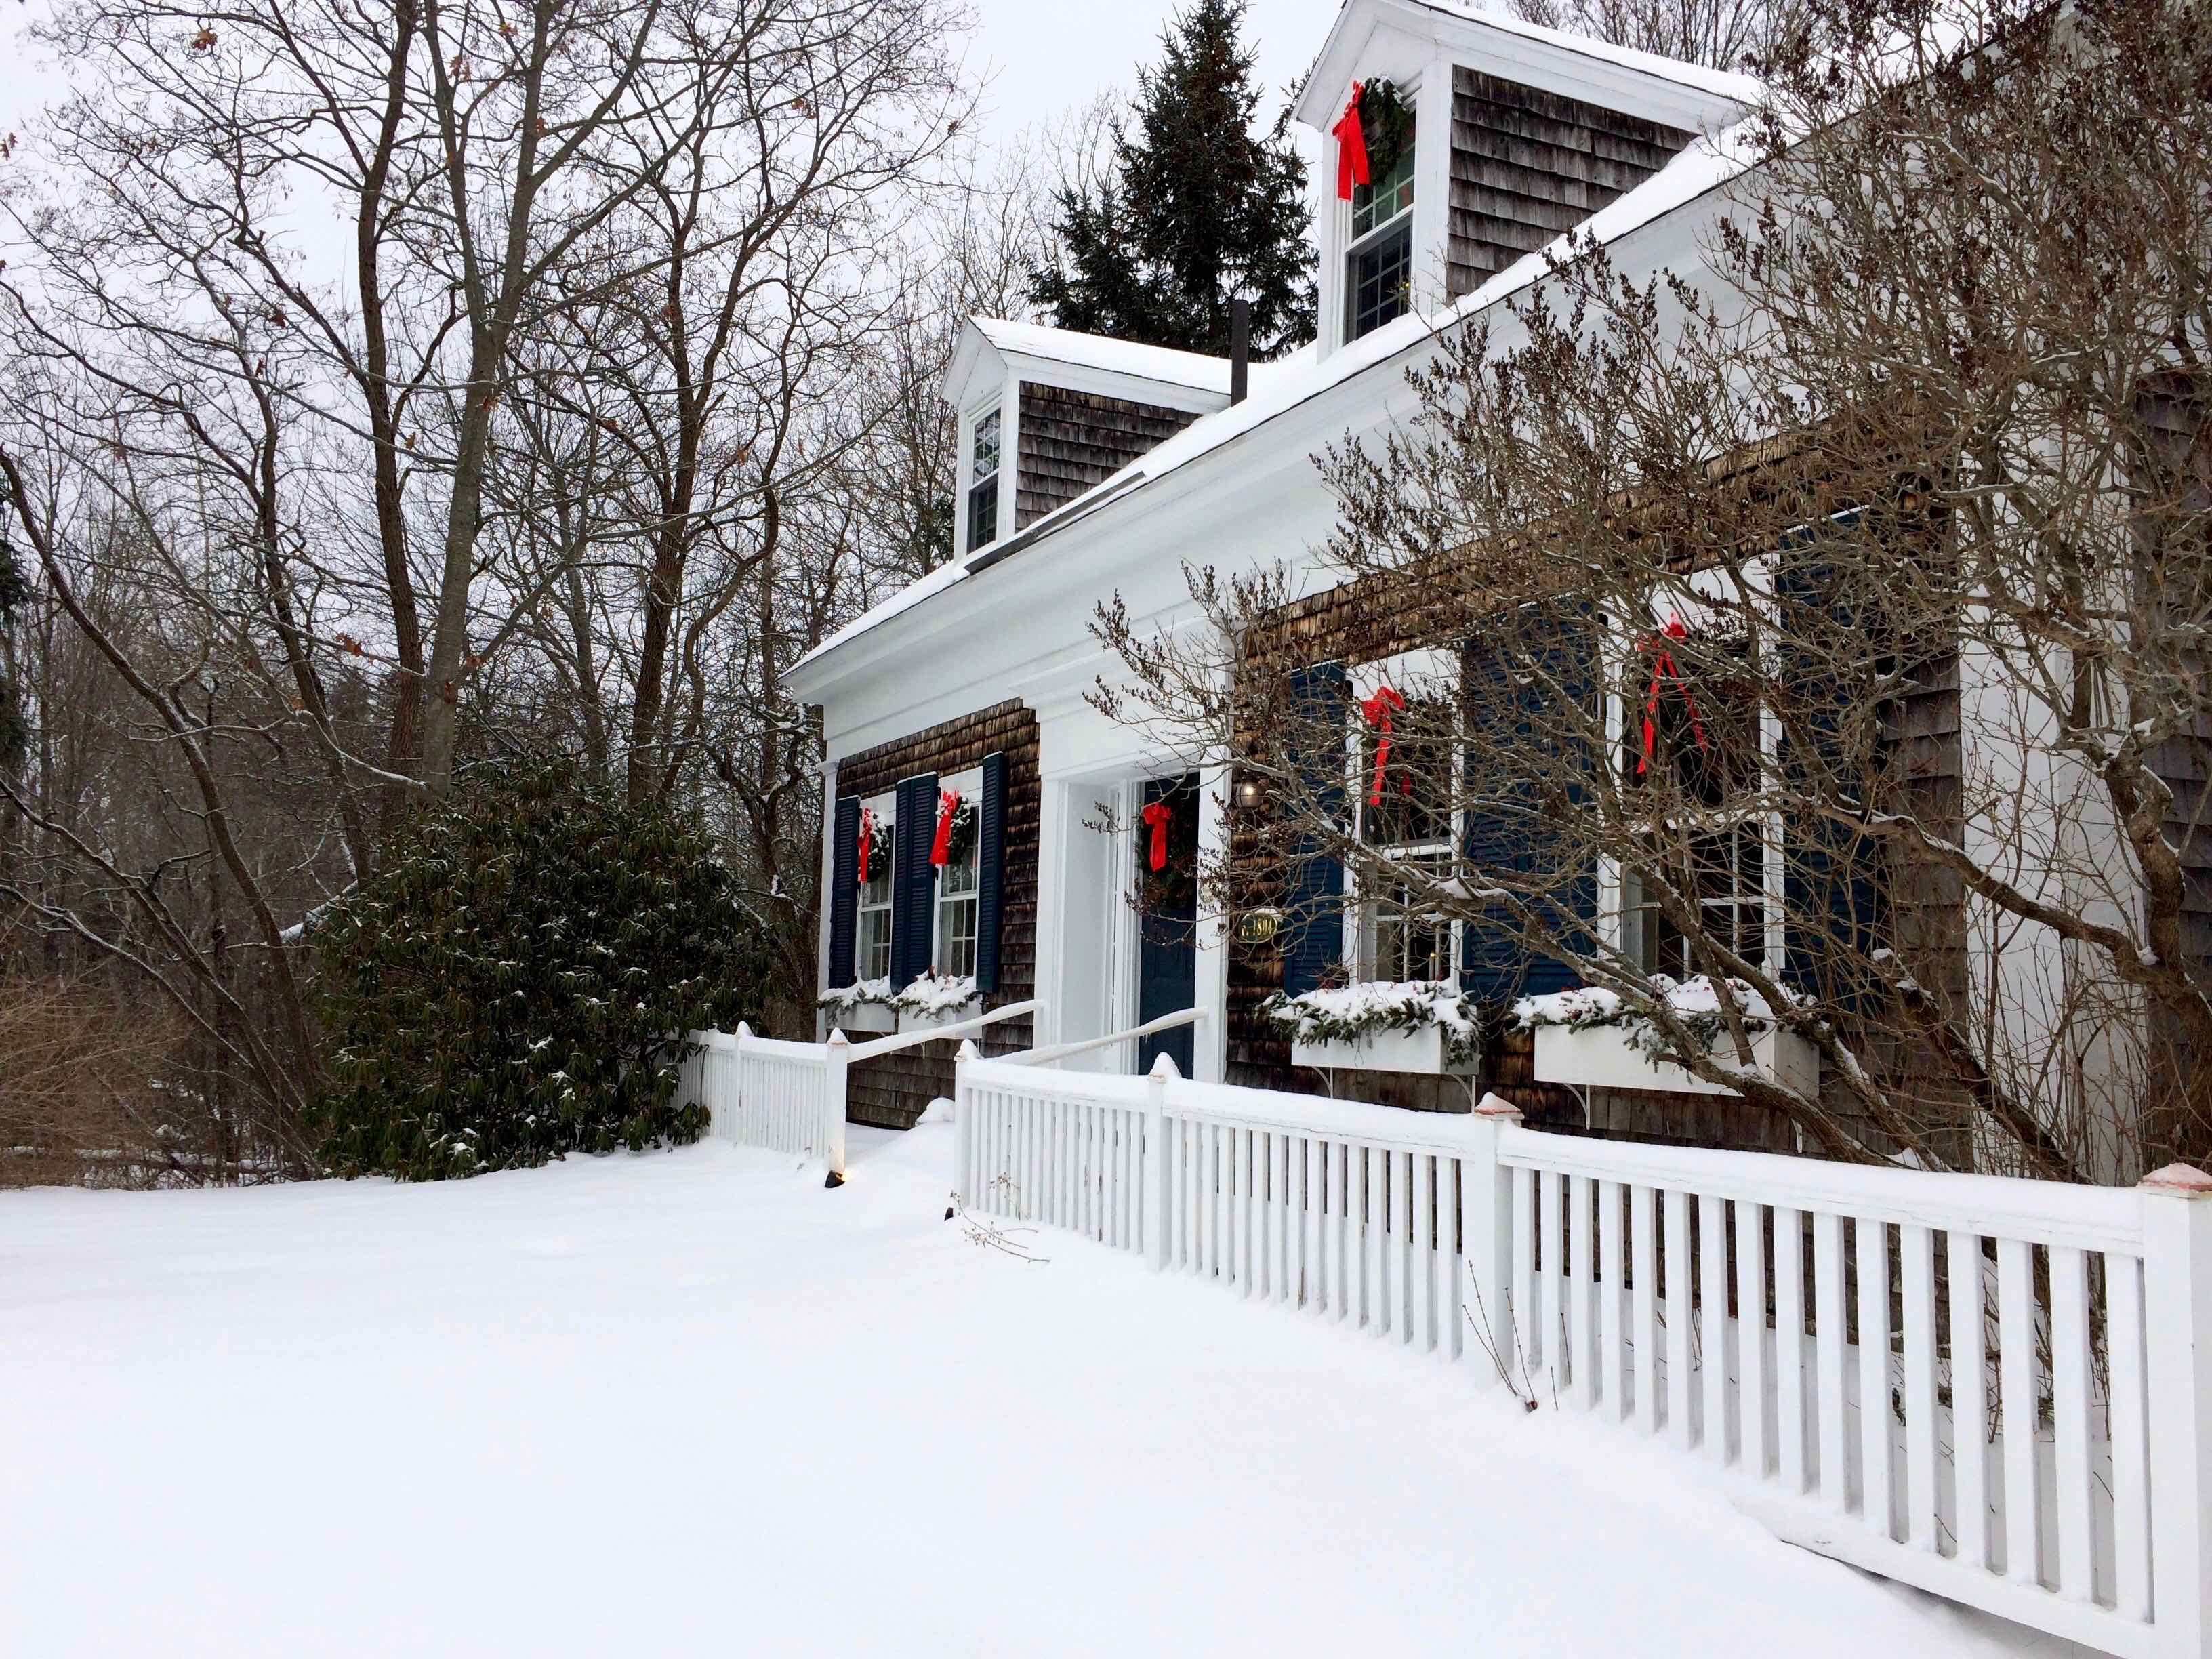 Coach Stop Inn - Christmas winter scene